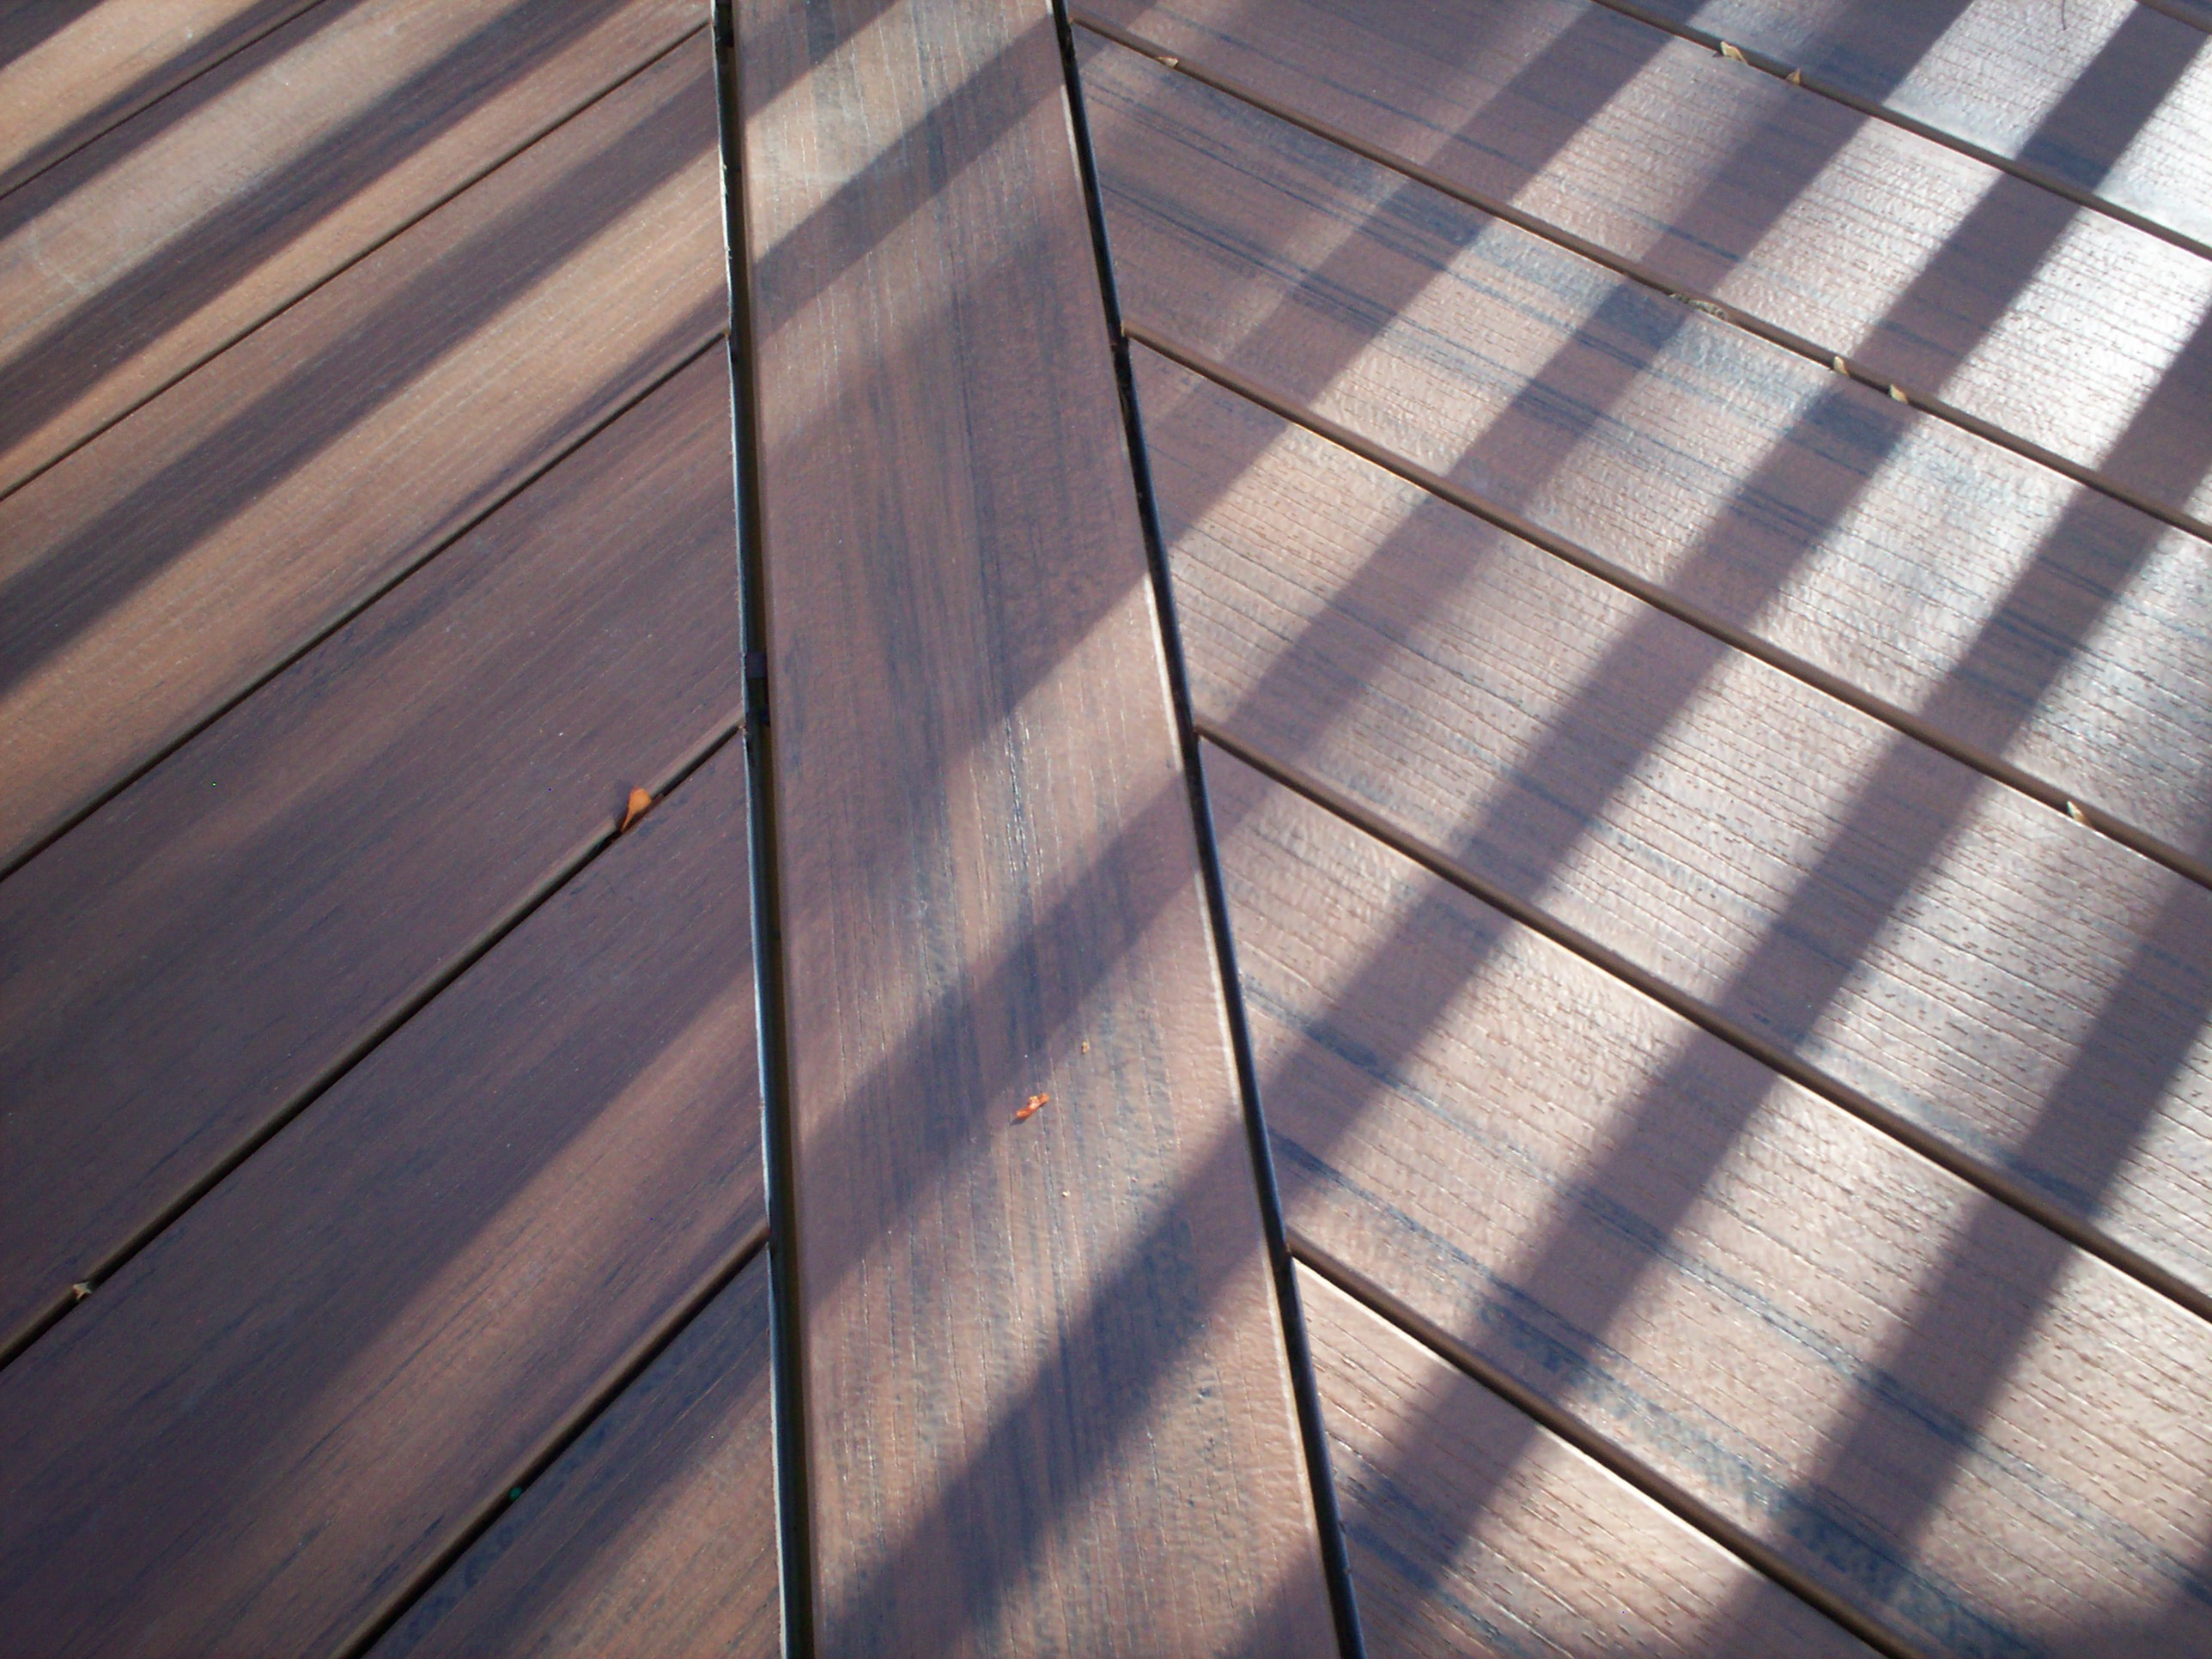 St louis mo deck design and building details by Composite flooring for decks